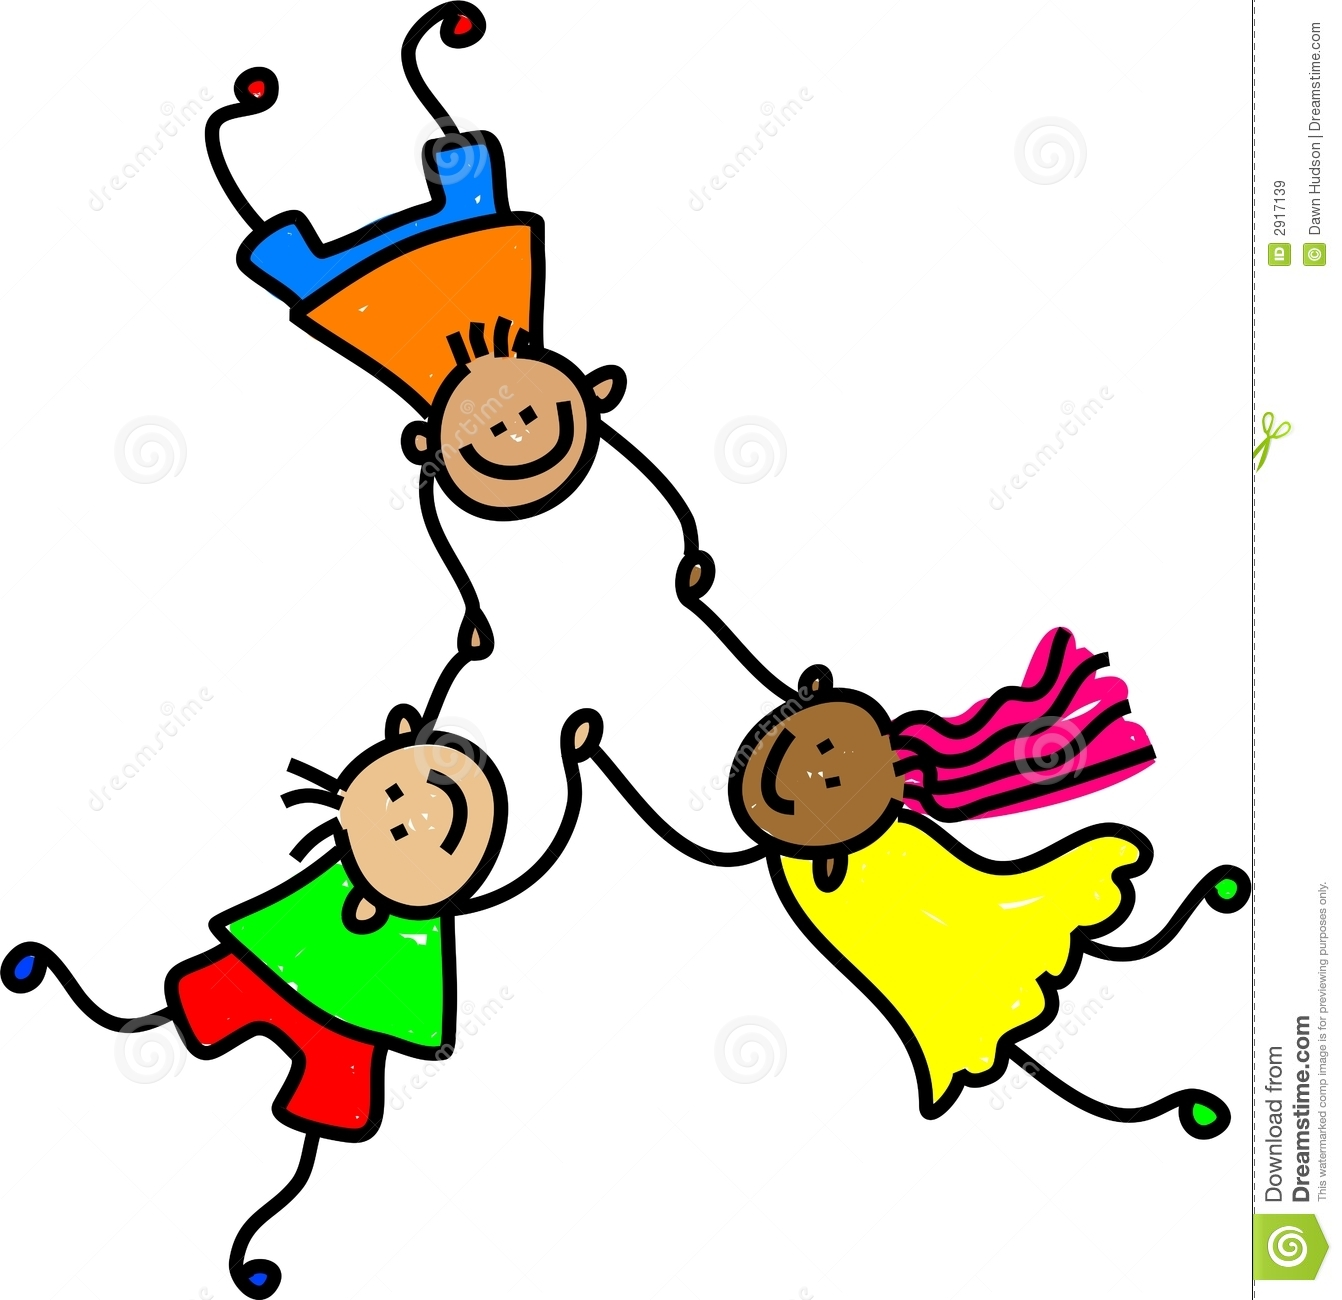 Kids Teamwork Clipart   Clipart Panda   Free Clipart Images